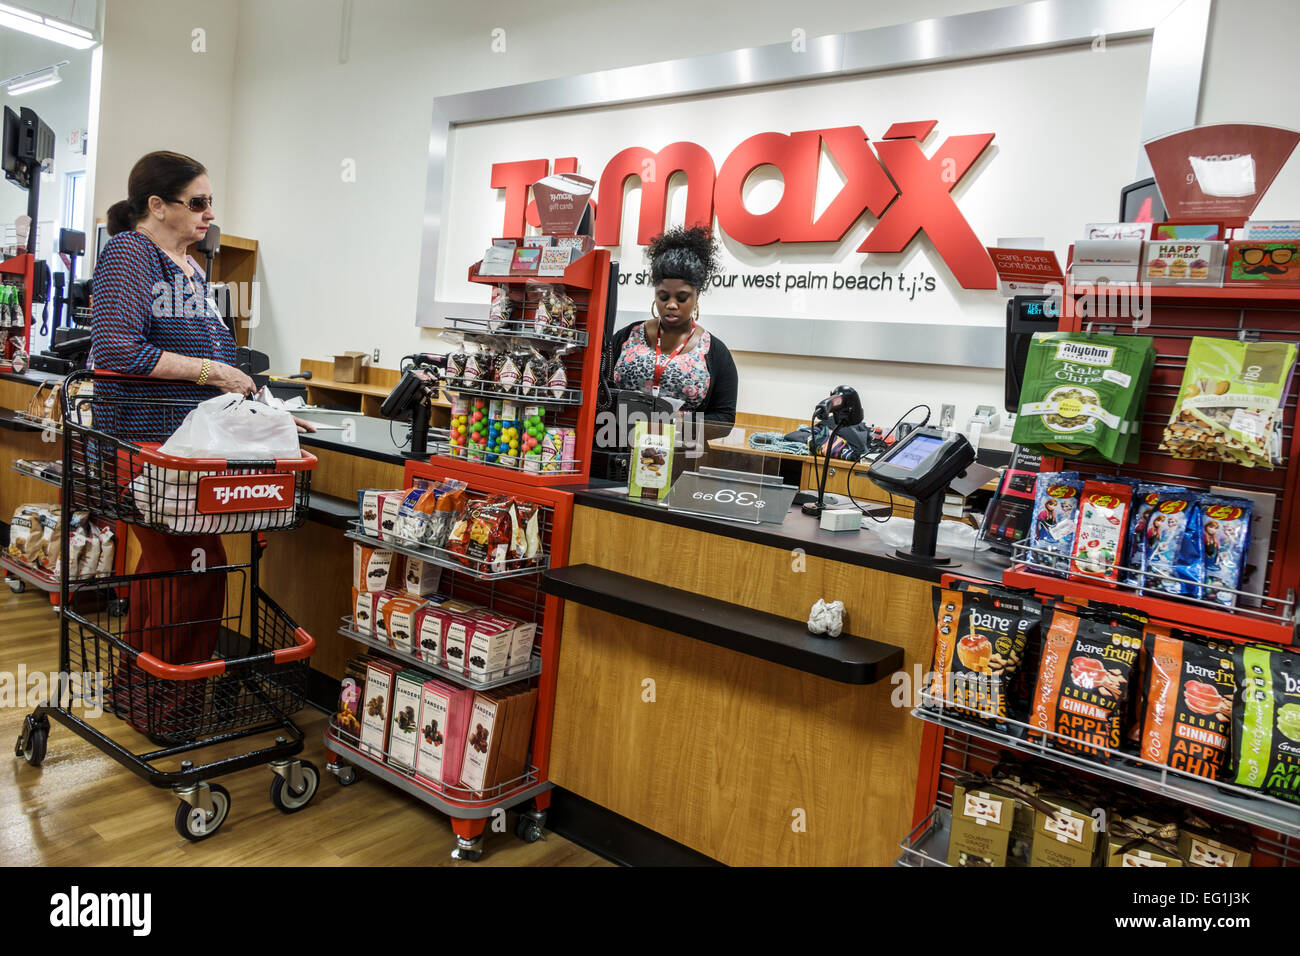 Tj Maxx Store In West Stock Photos & Tj Maxx Store In West Stock ...